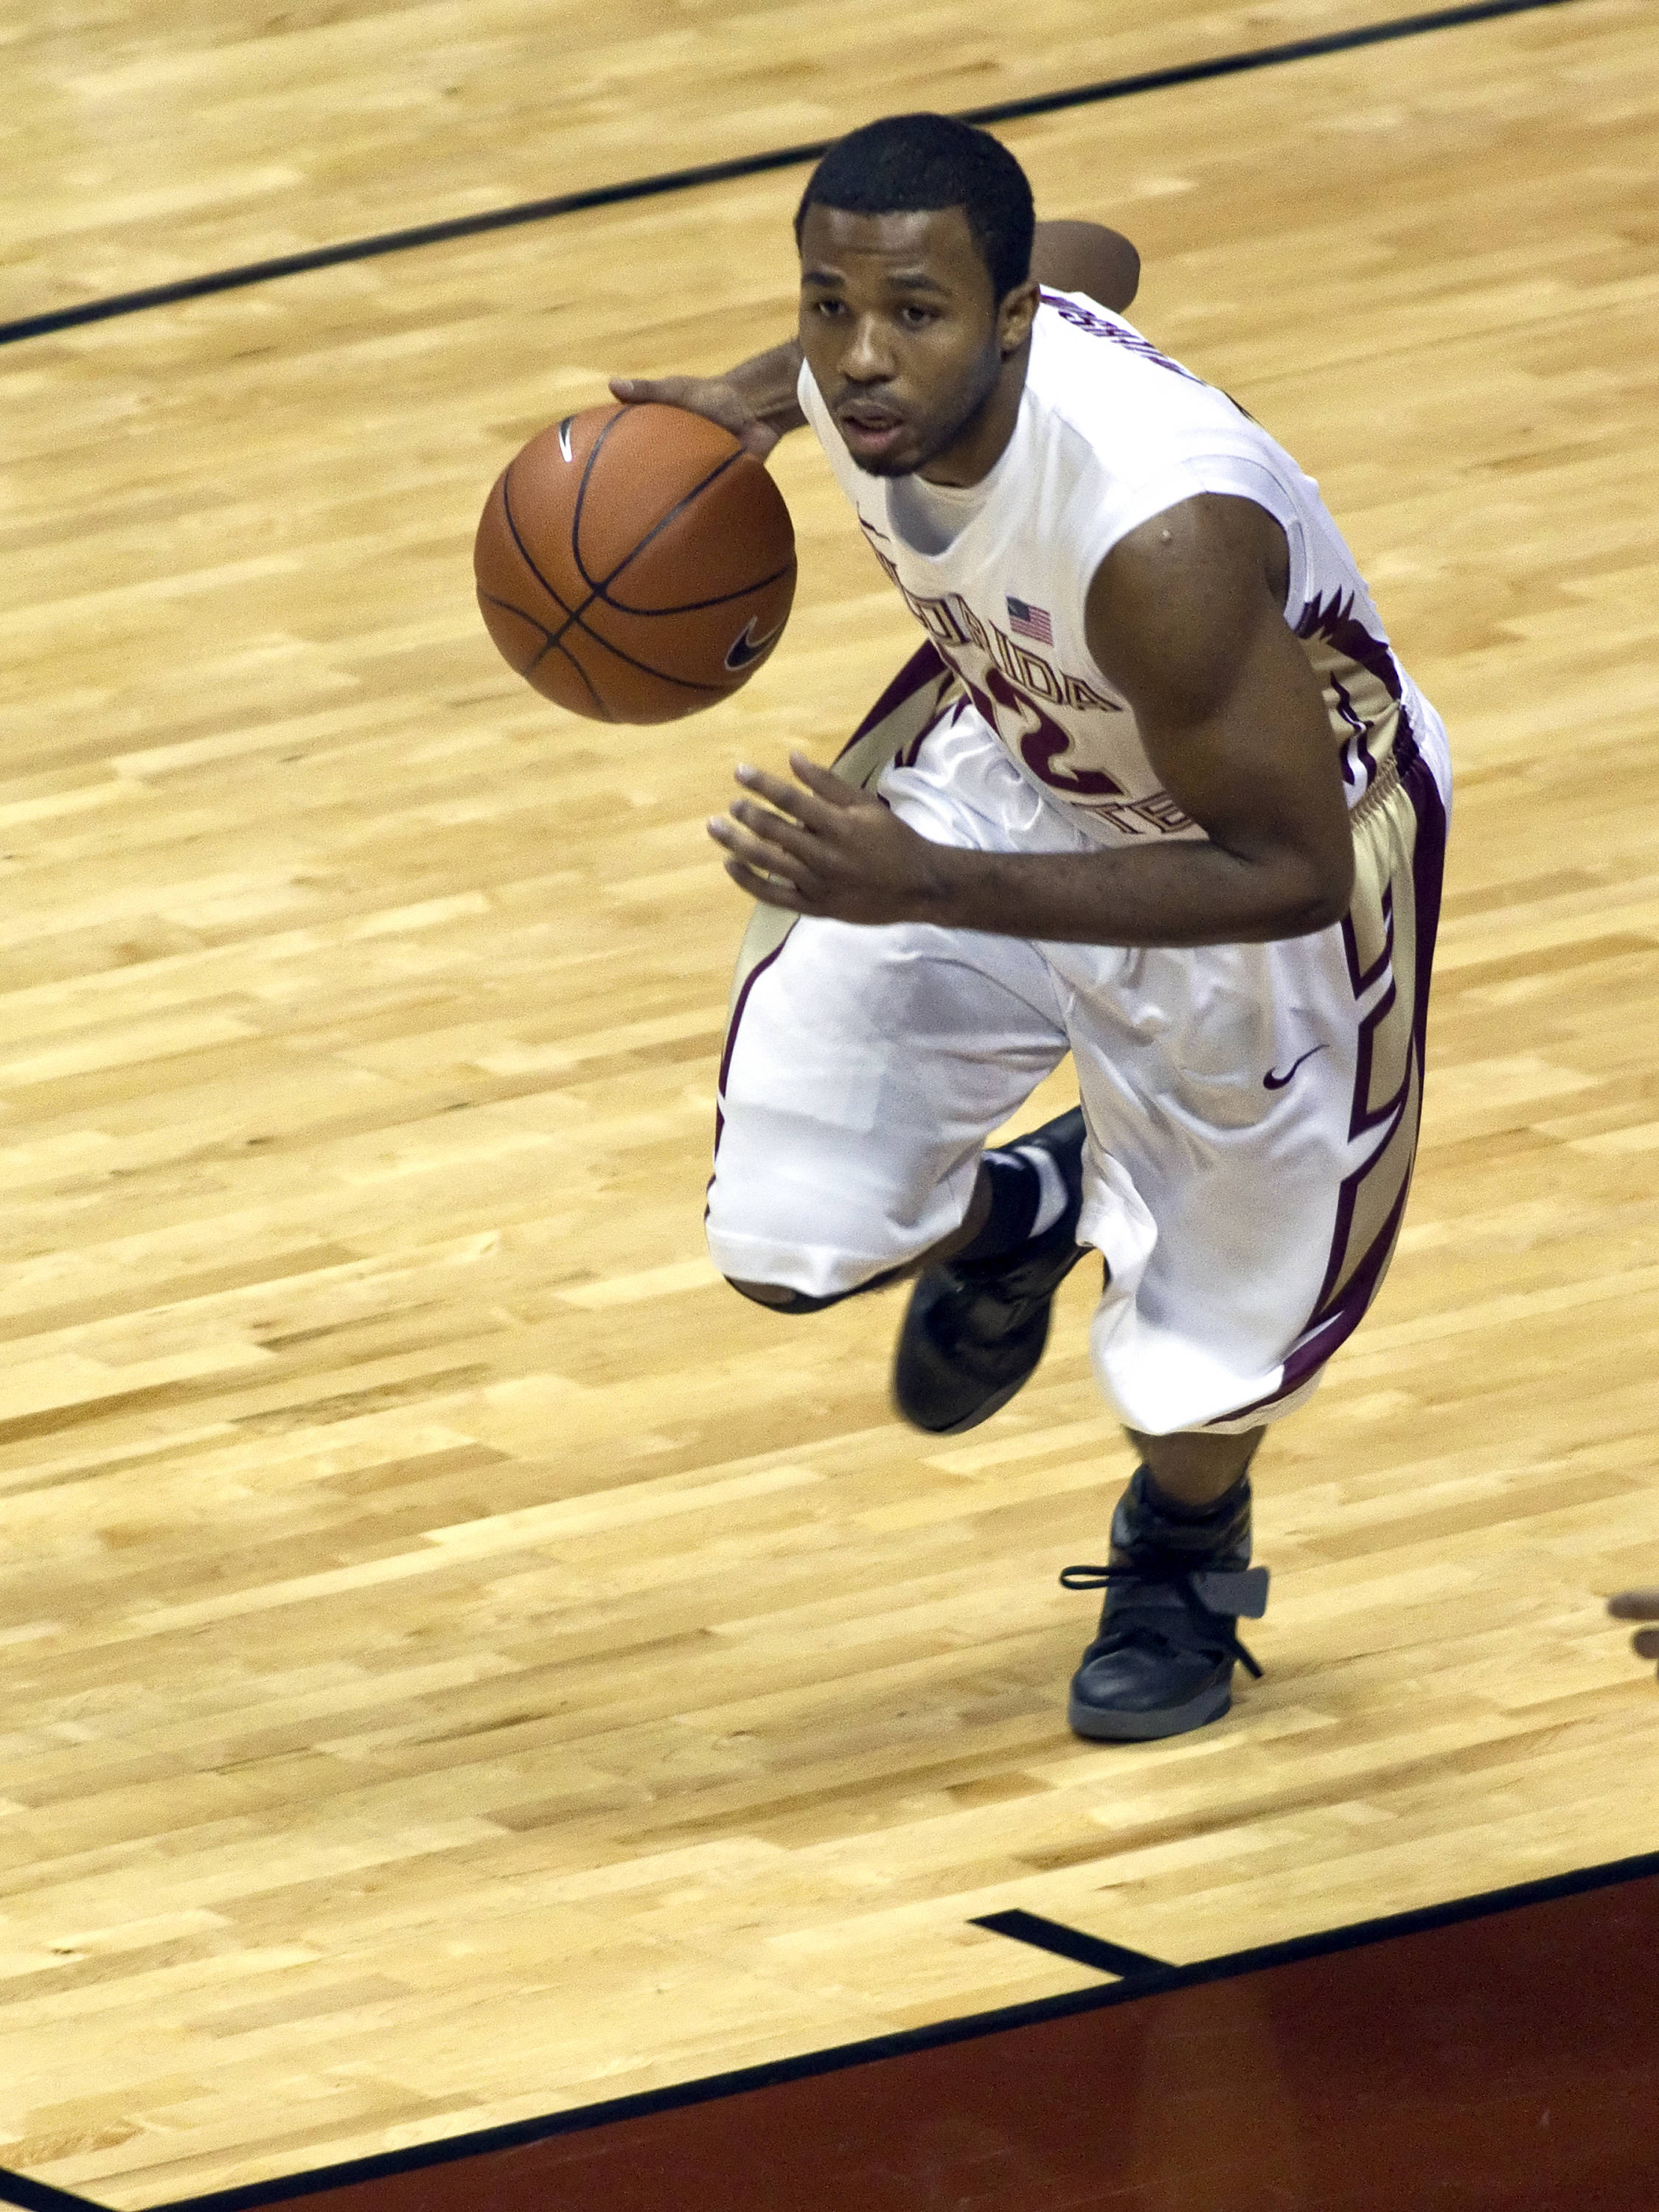 Jeff Peterson (12), FSU vs Loyola-Mary., 12/18/2011